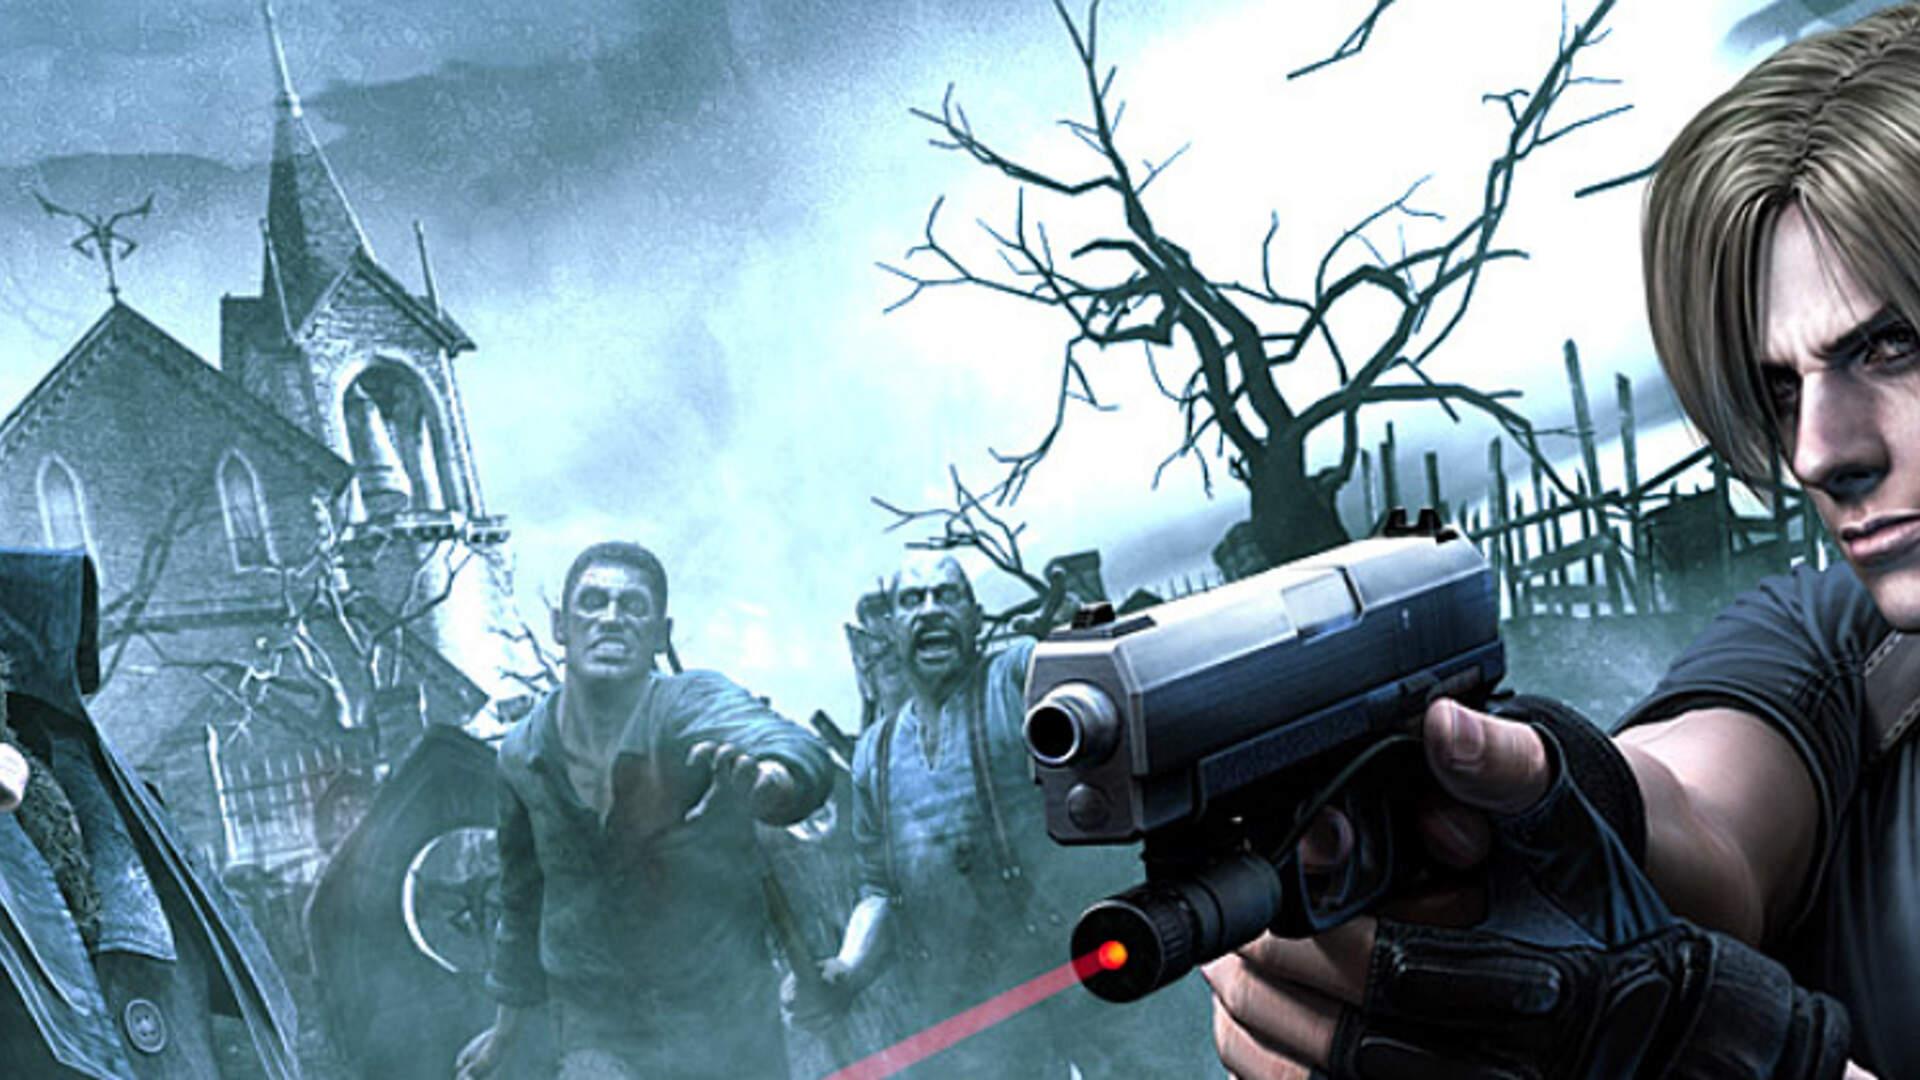 The 15 Best Games Since 2000, Number 7: Resident Evil 4